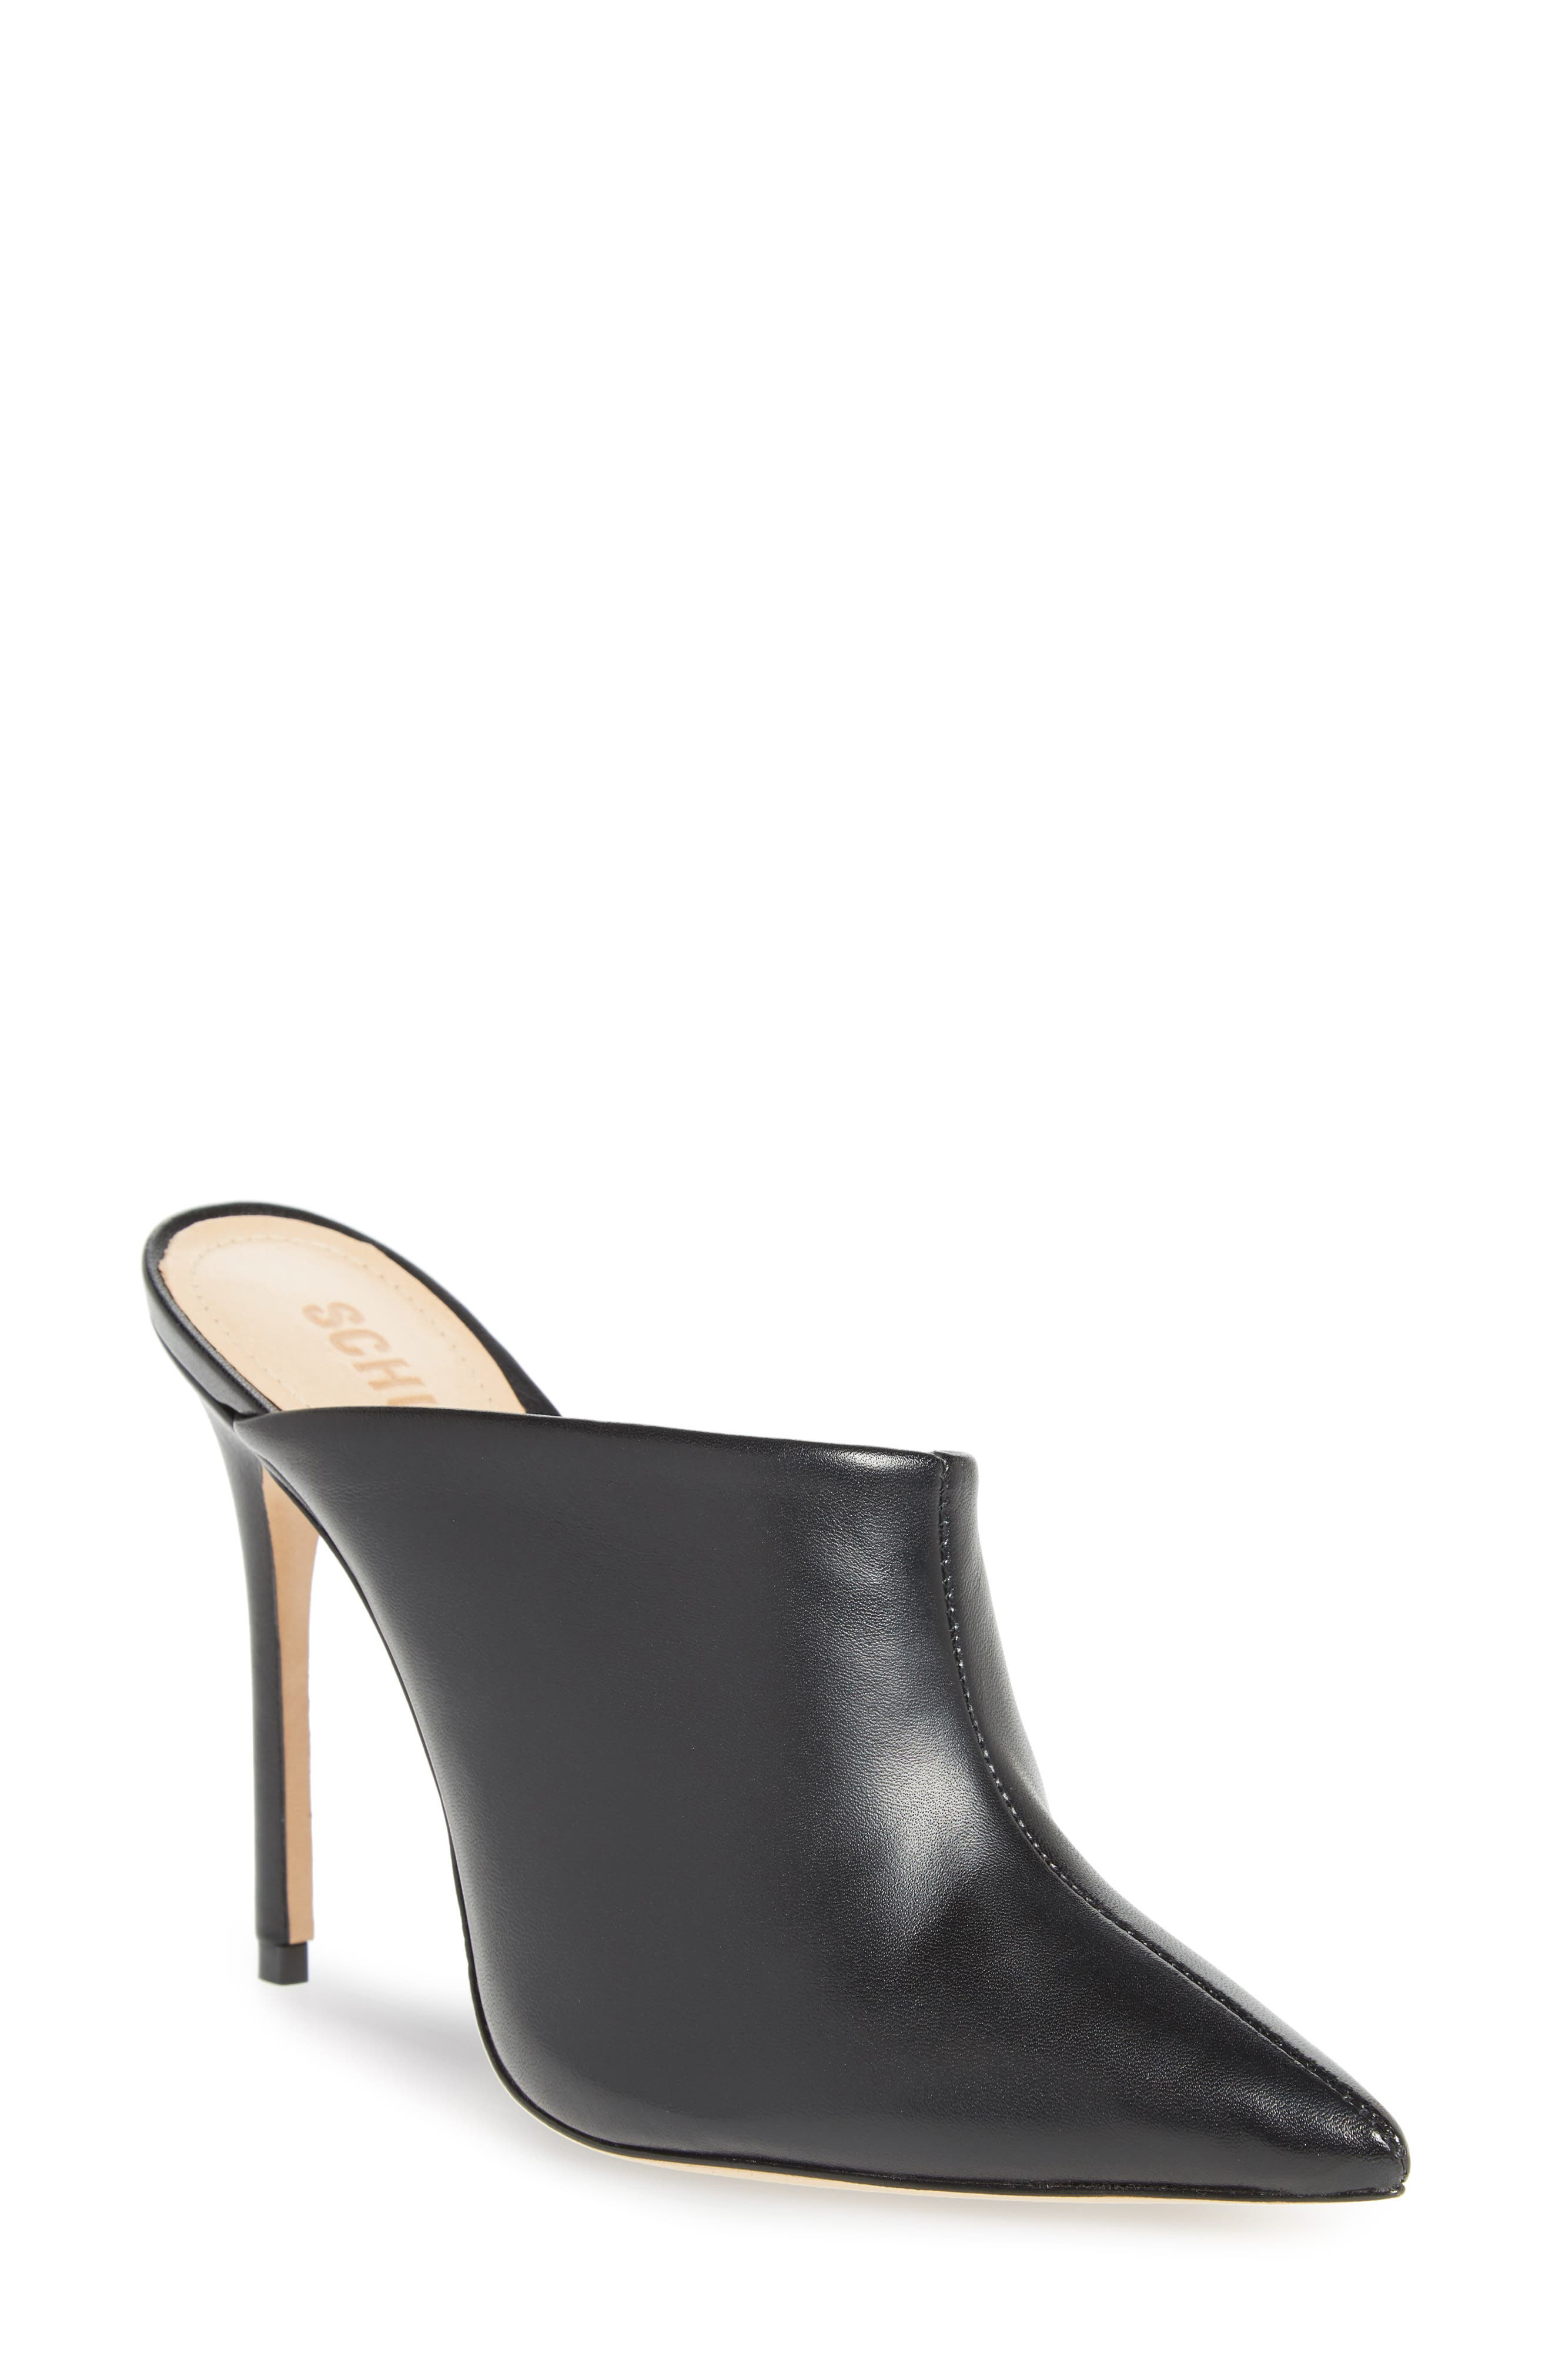 Quincy Stiletto Mule,                         Main,                         color, BLACK